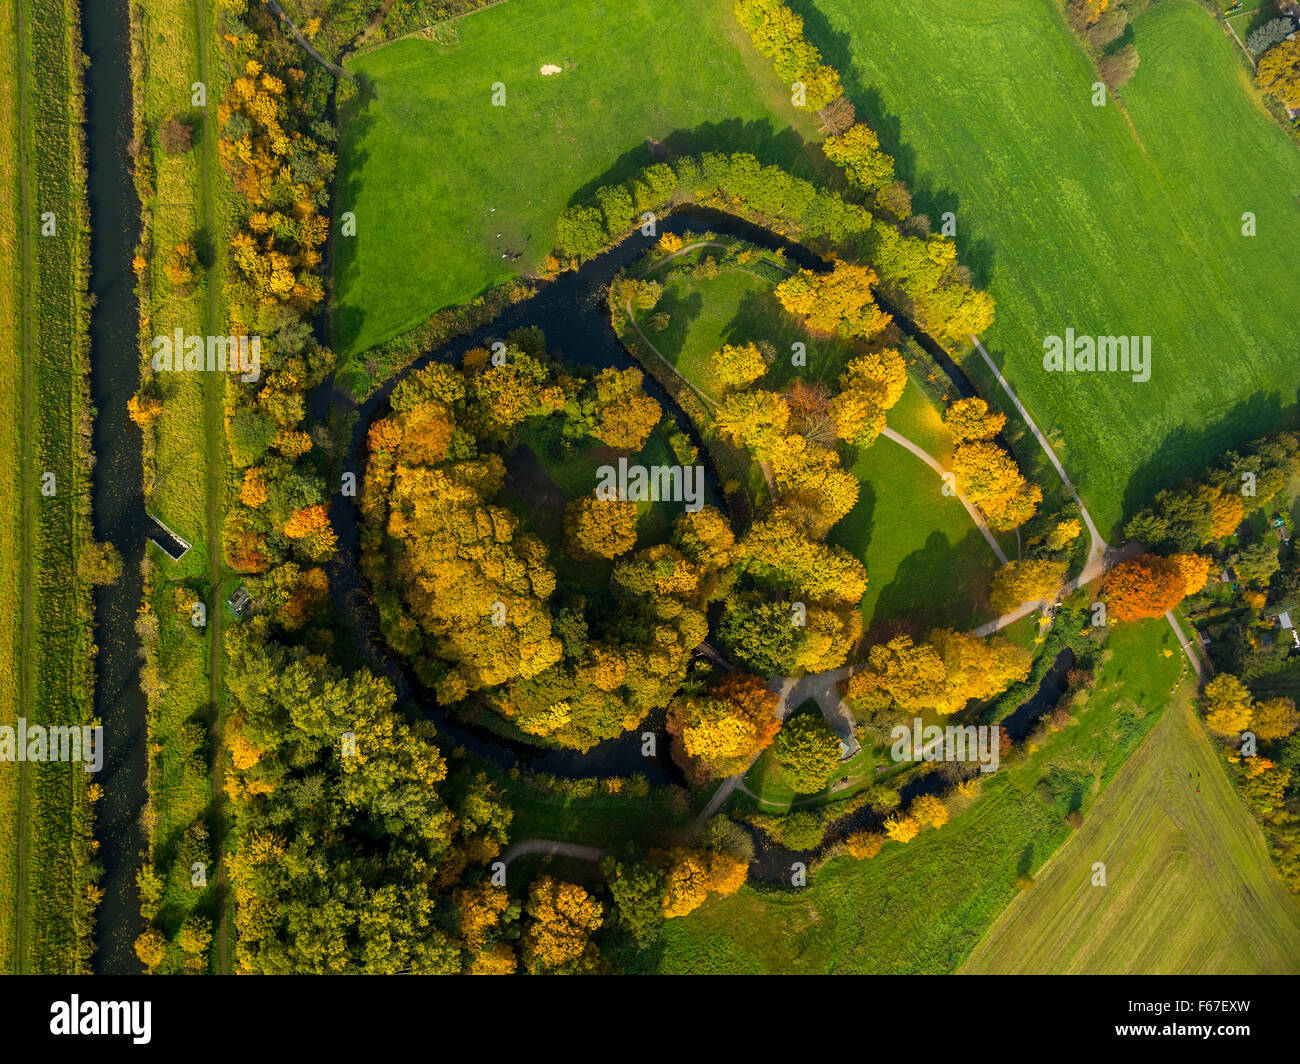 Burghügel Mark, the nucleus of the city of Hamm, former site of the castle, Hamm, Ruhr area, North Rhine-Westphalia, - Stock Image